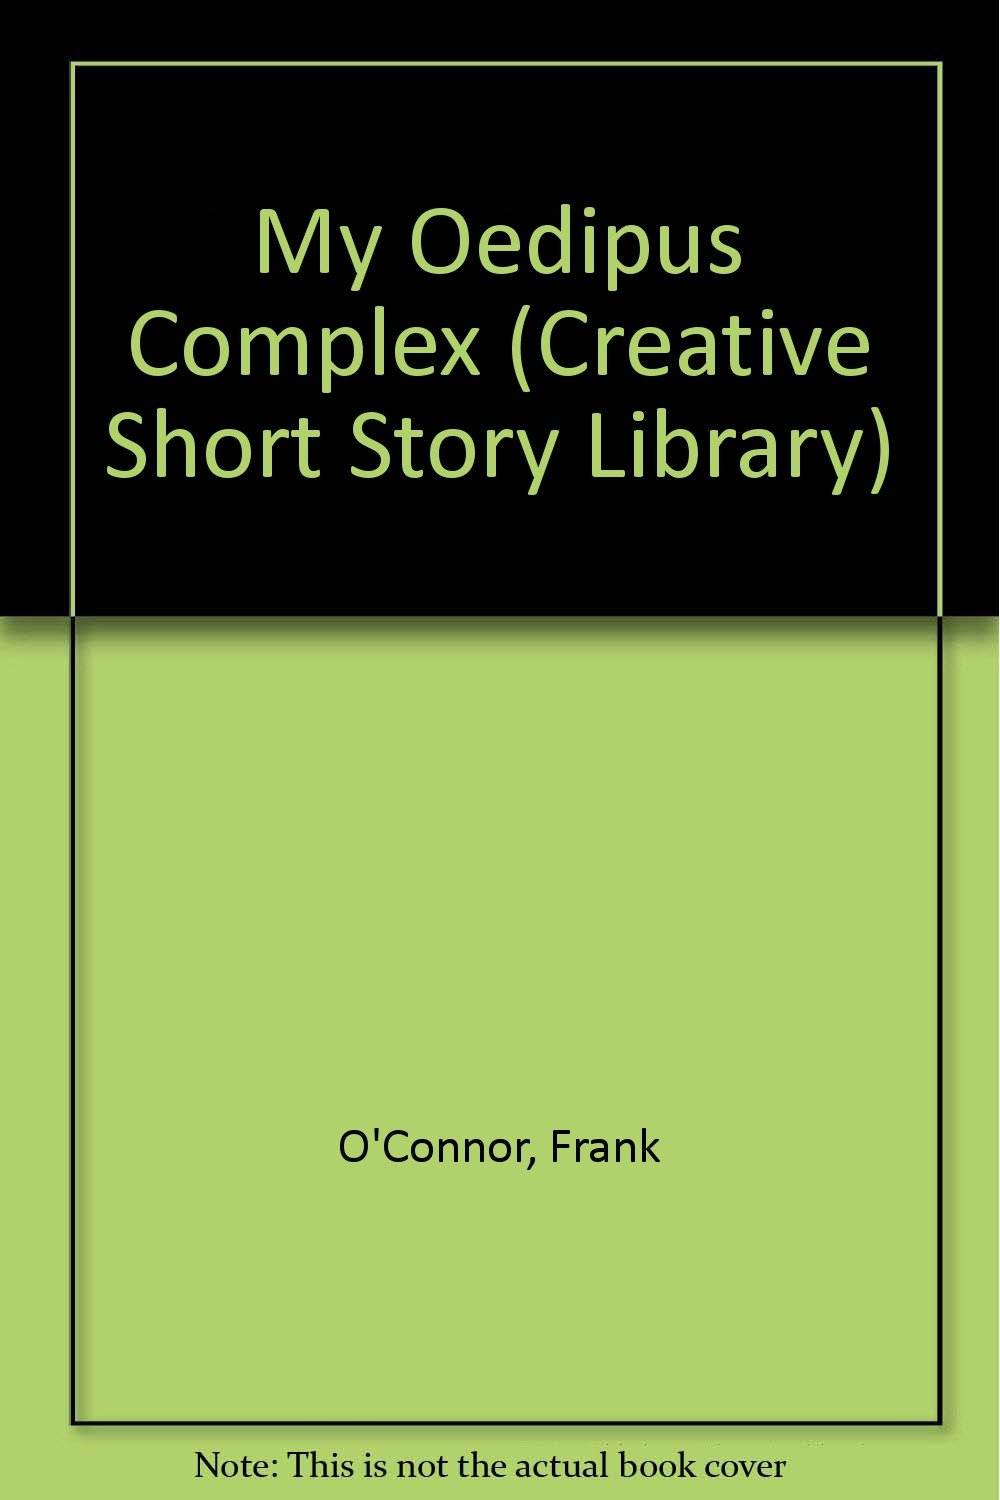 my oedipus complex by frank o connor analysis